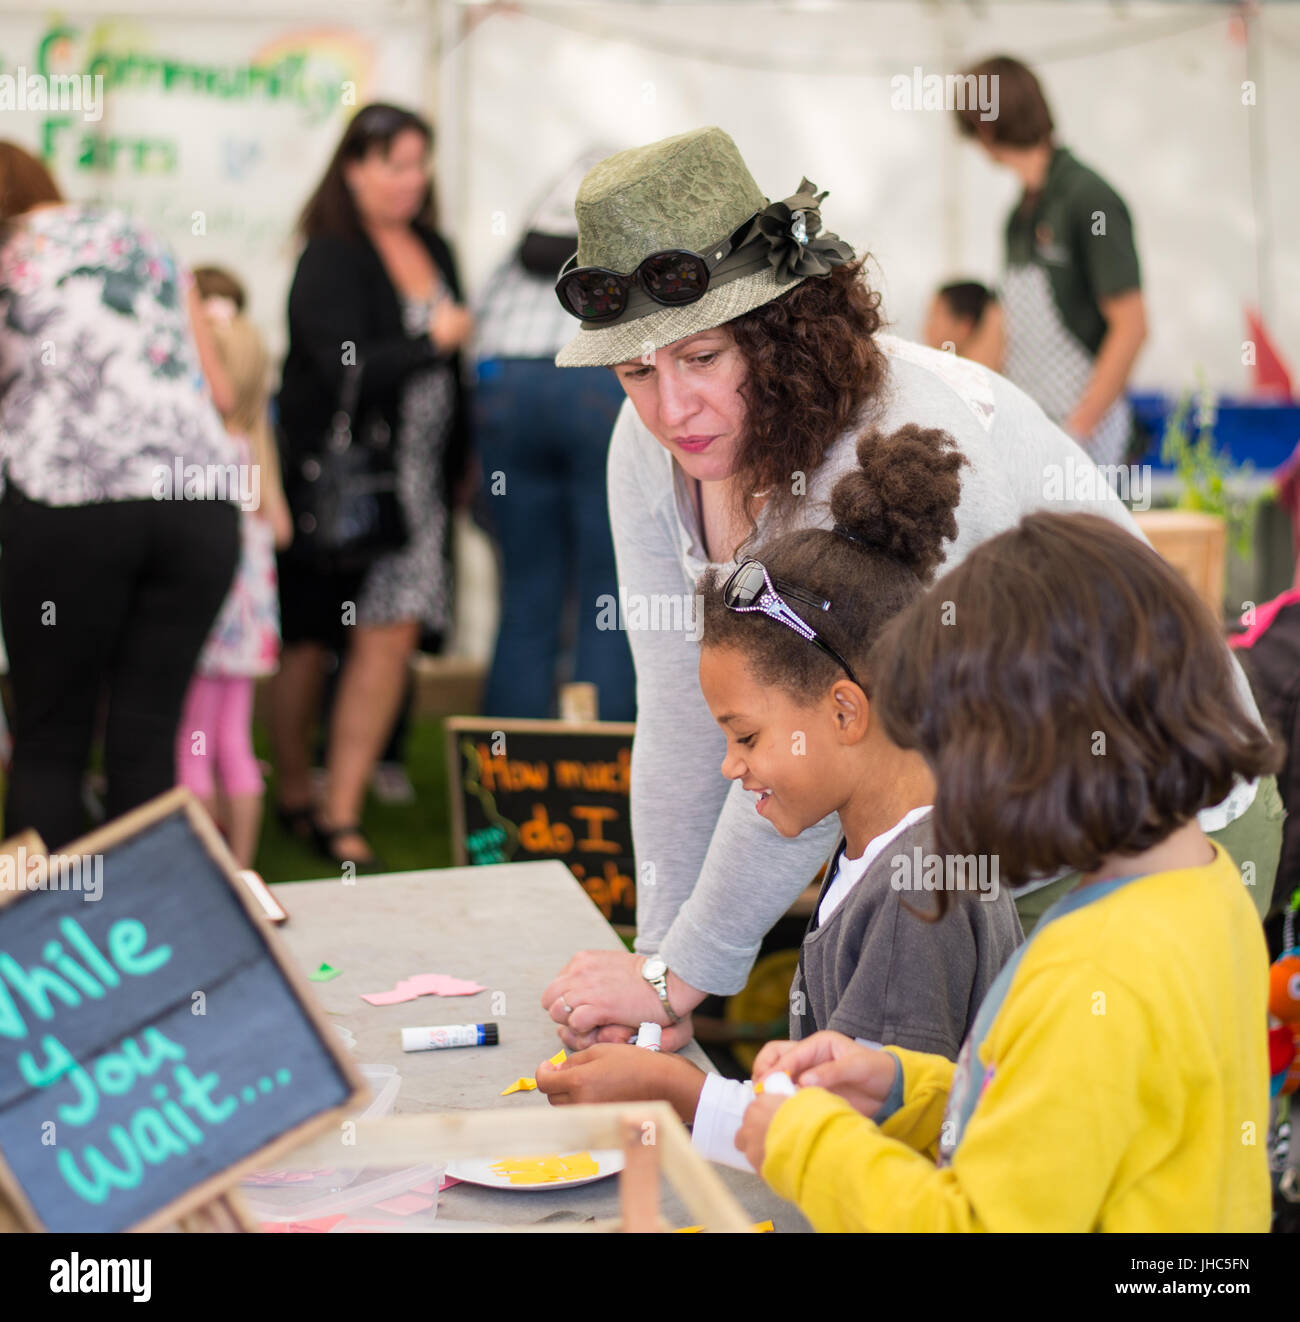 Children doing crafts at Isle Of Man Food & Drink Festival - Stock Image